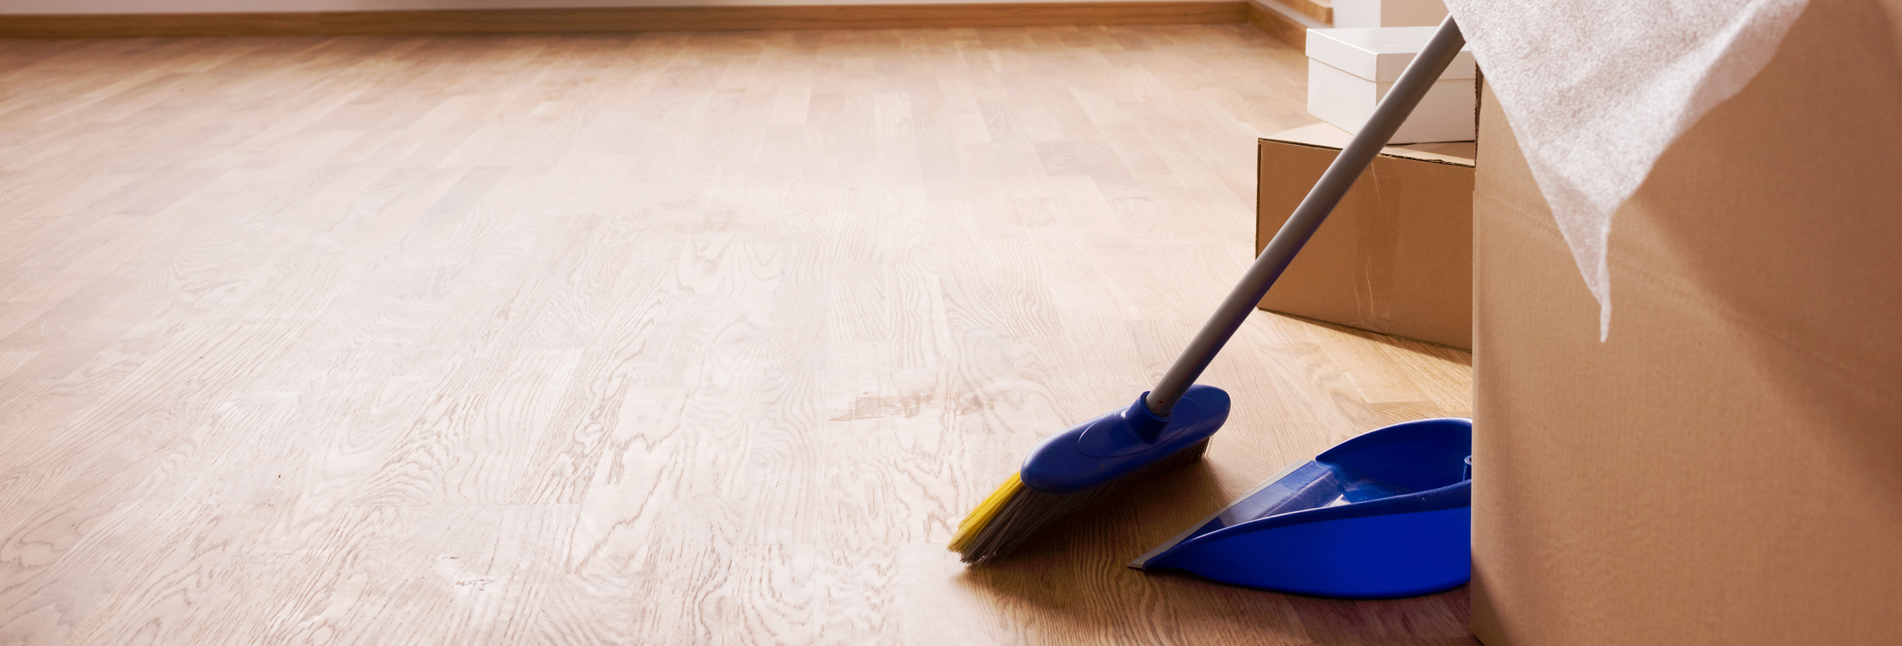 Why Should I Hire a Professional End of lease cleaning Adelaide Services?